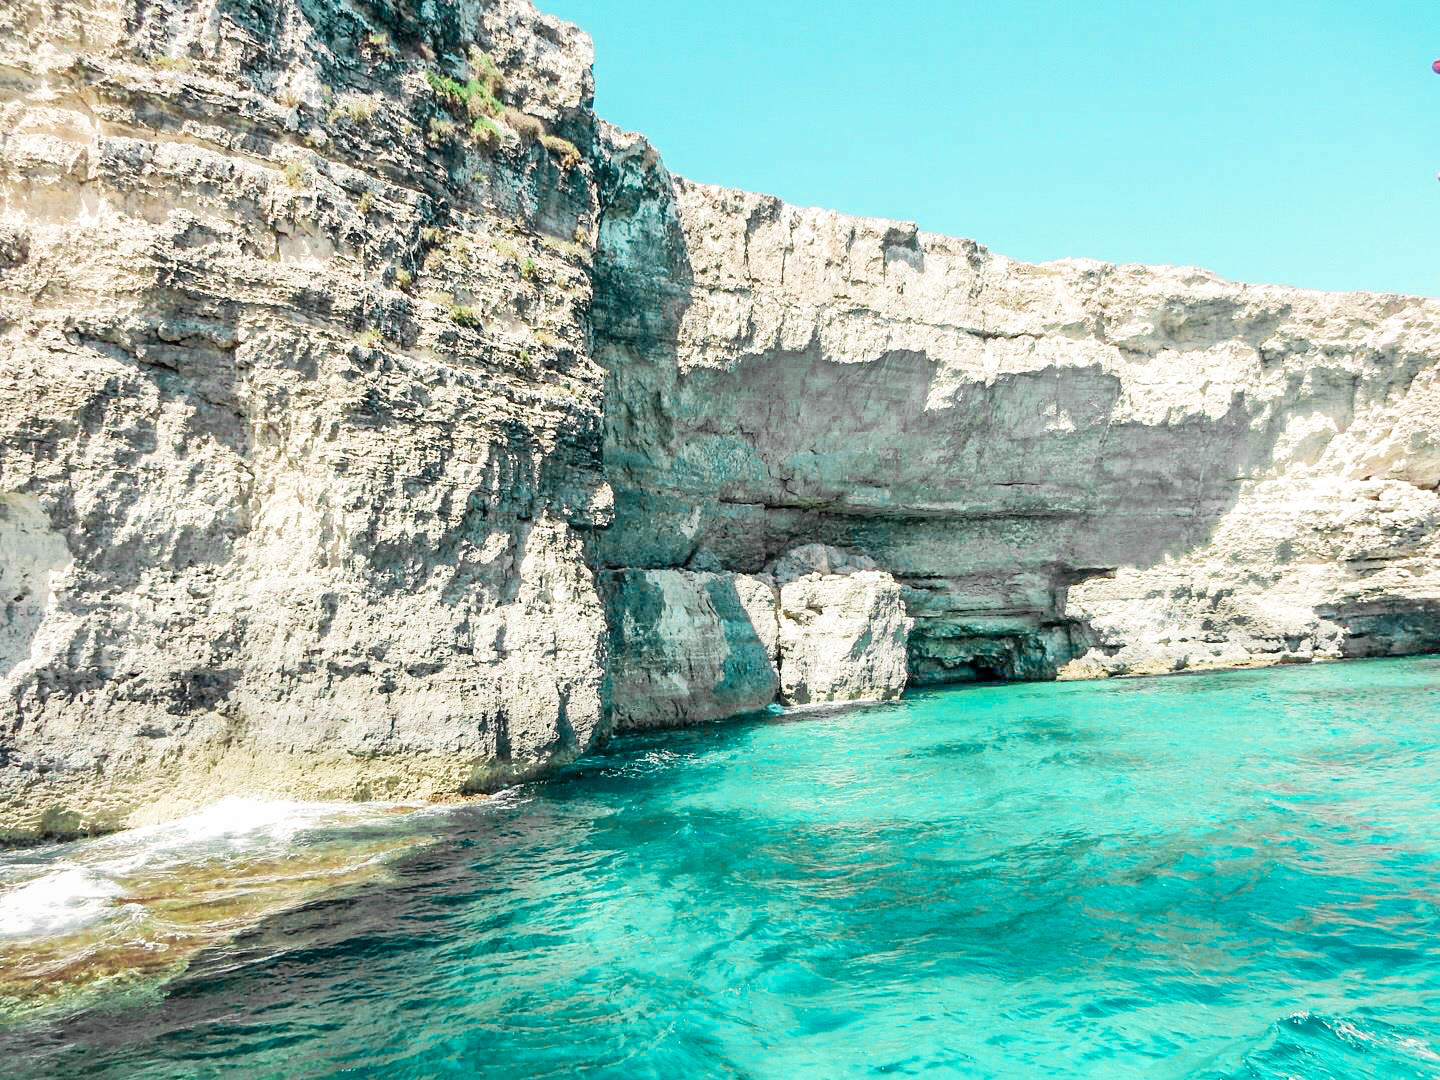 south channels of comino island